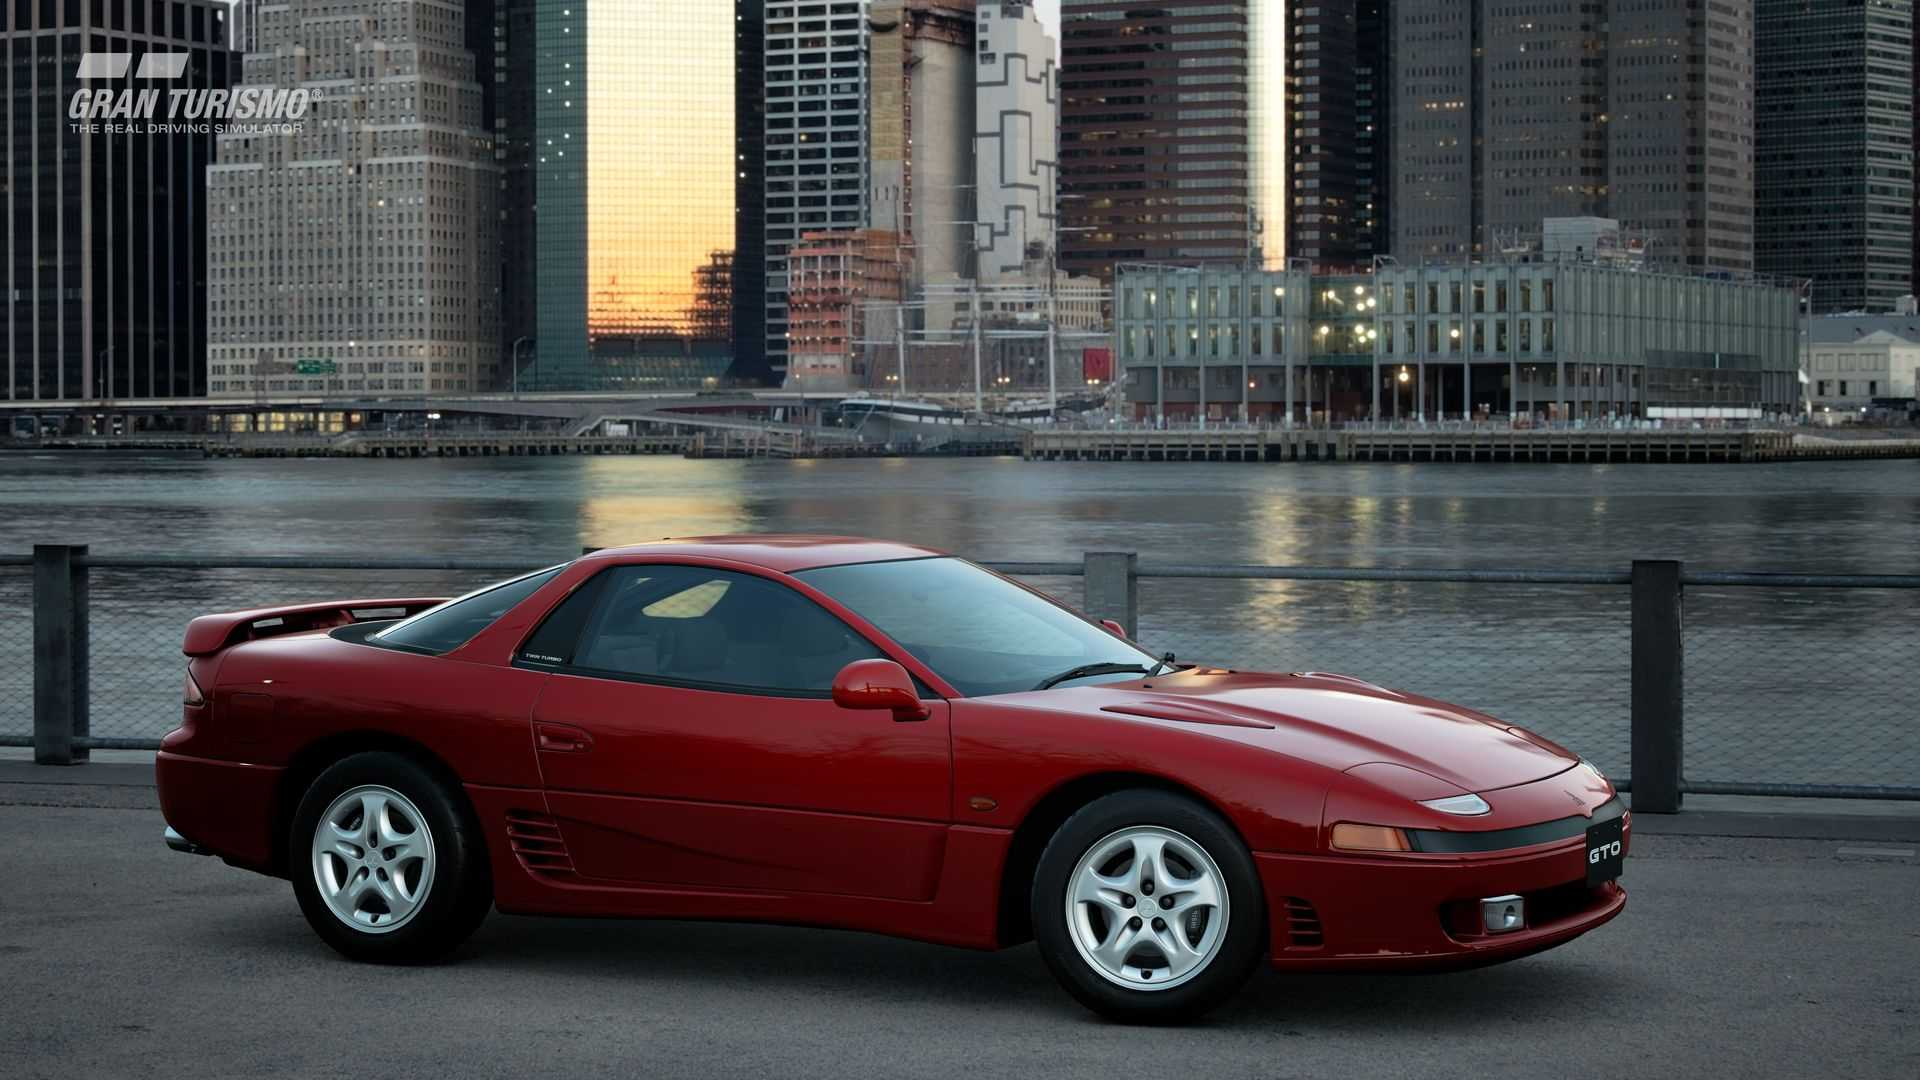 1991-mitsubishi-gto-twin-turbo-joins-gran-turismo-sport